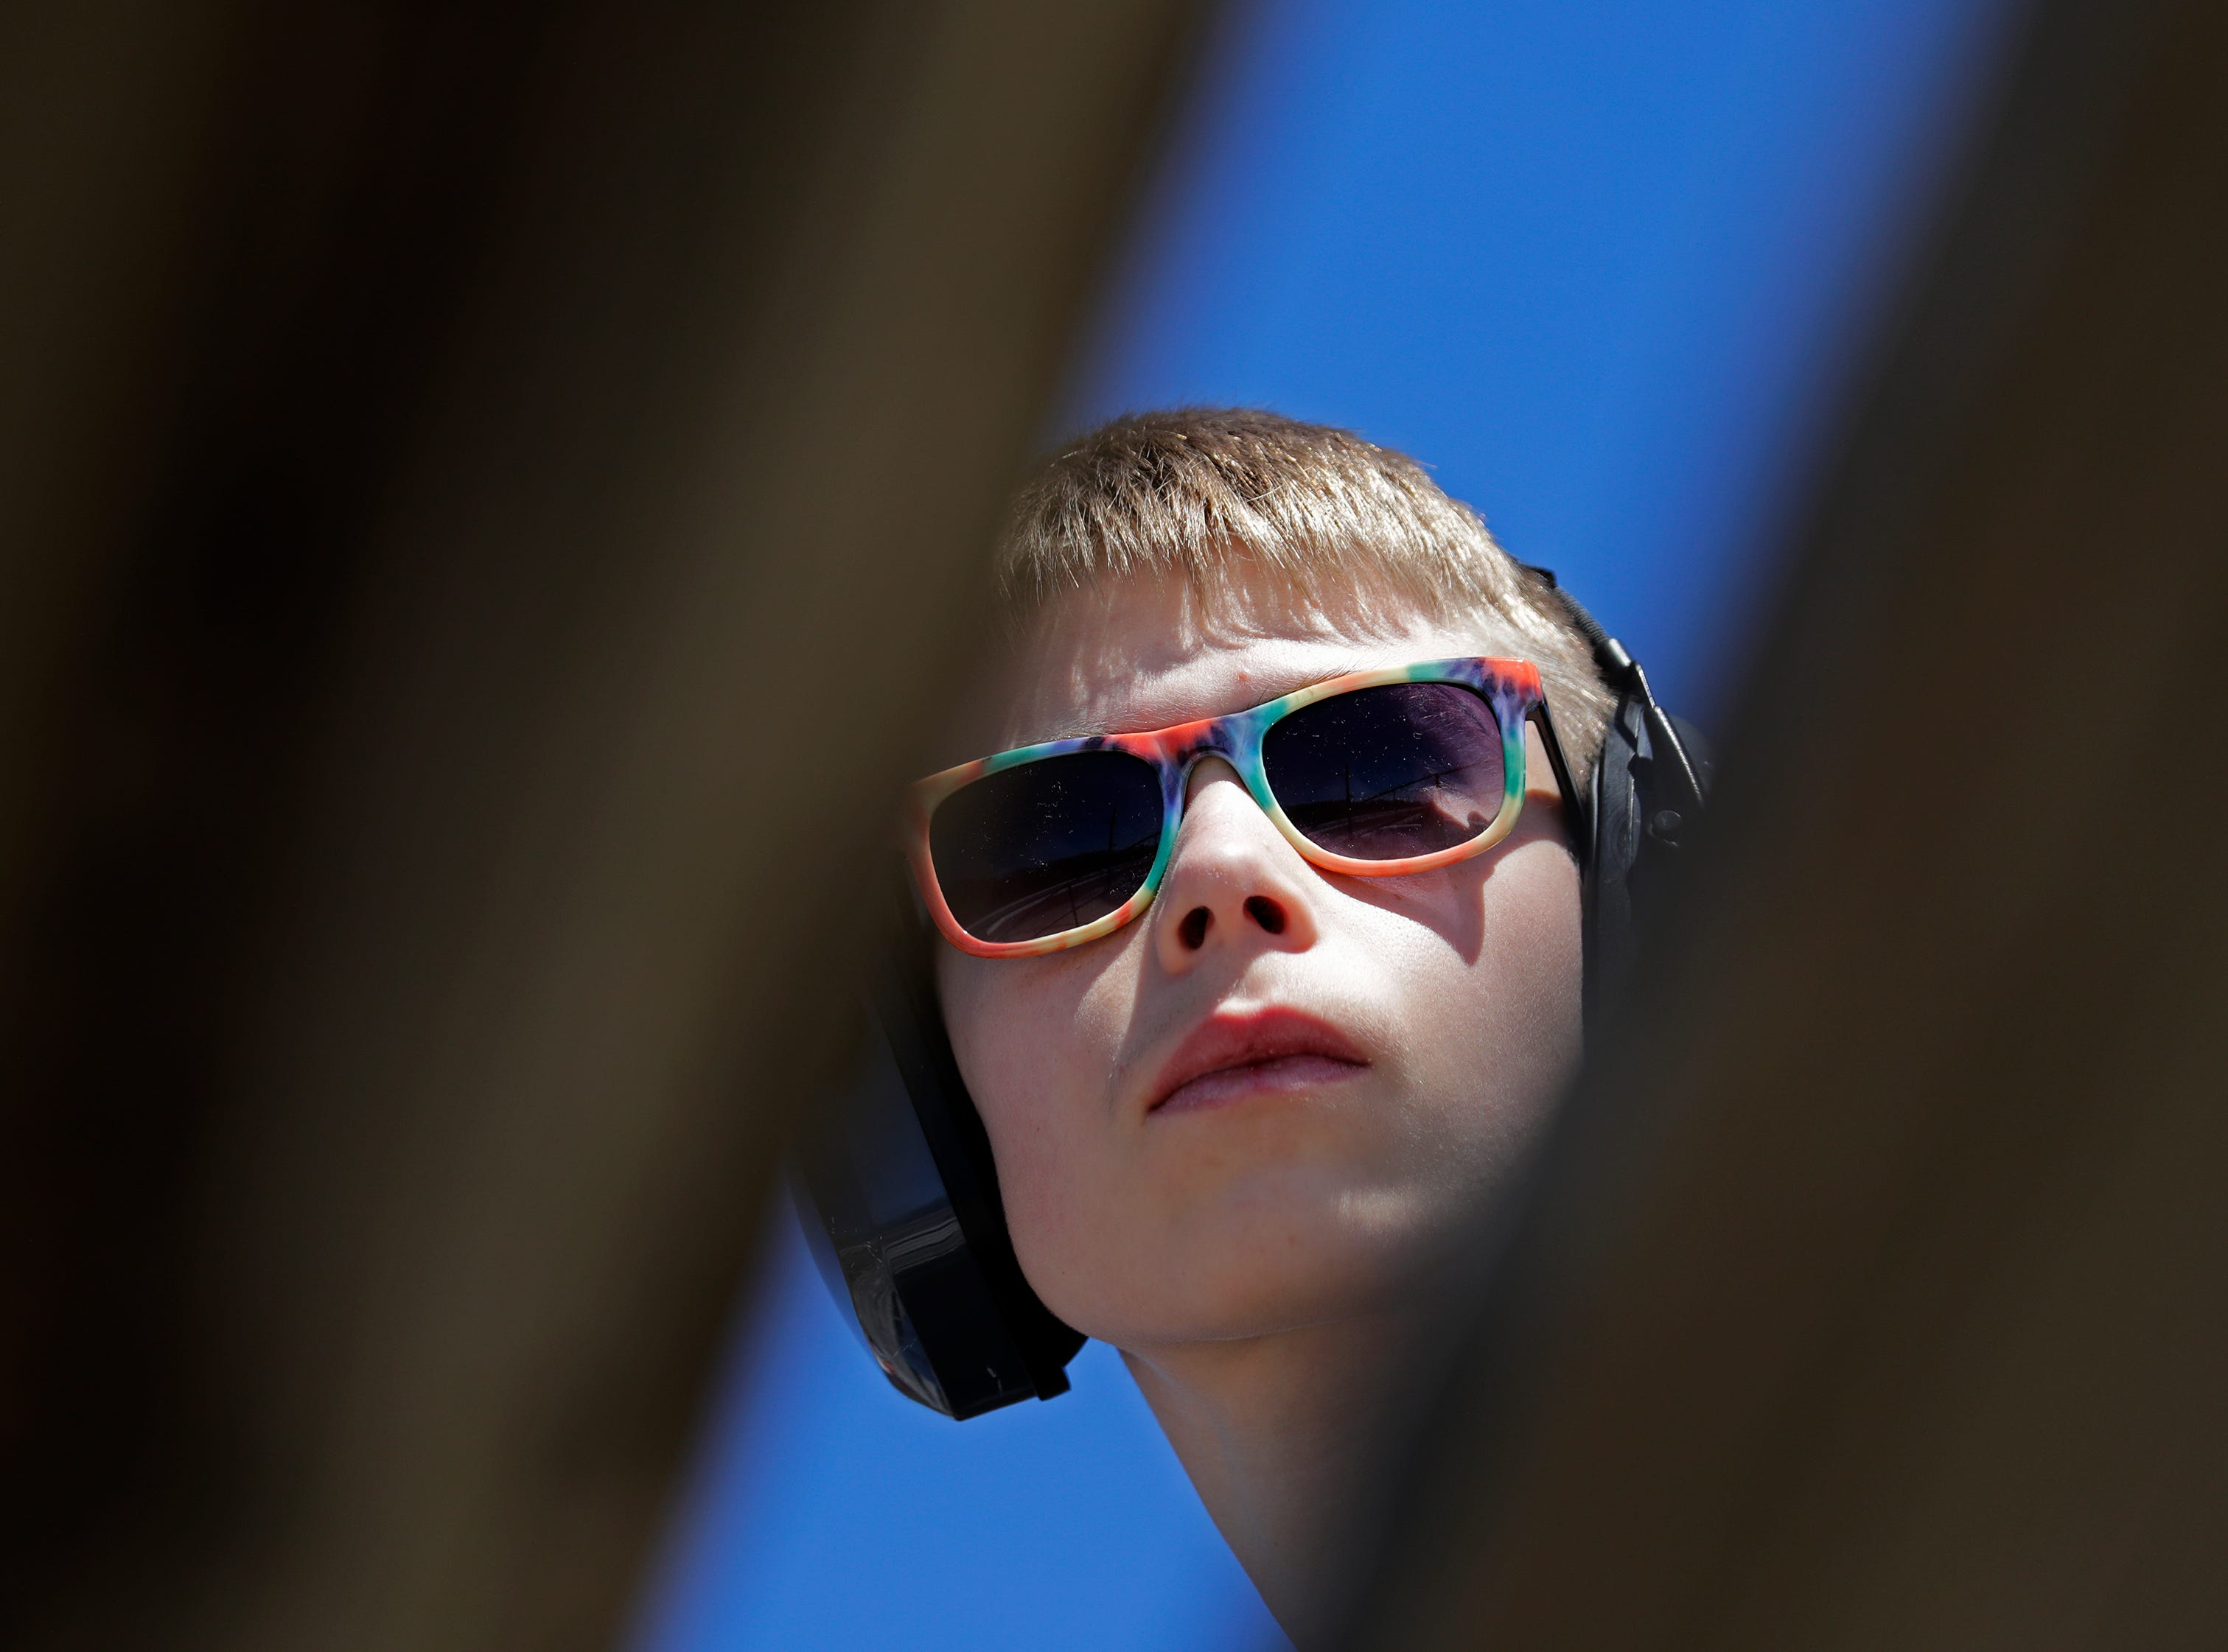 Colby Gill, 14, of Neenah keeps his eyes on the action during the Wisconsin International Raceway Strip Test & Tune event Saturday, April 19, 2019, in Kaukauna, Wis. Drivers spent the day getting safety inspections, tune ups and test runs on the track for the upcoming season.Dan Powers/USA TODAY NETWORK-Wisconsin